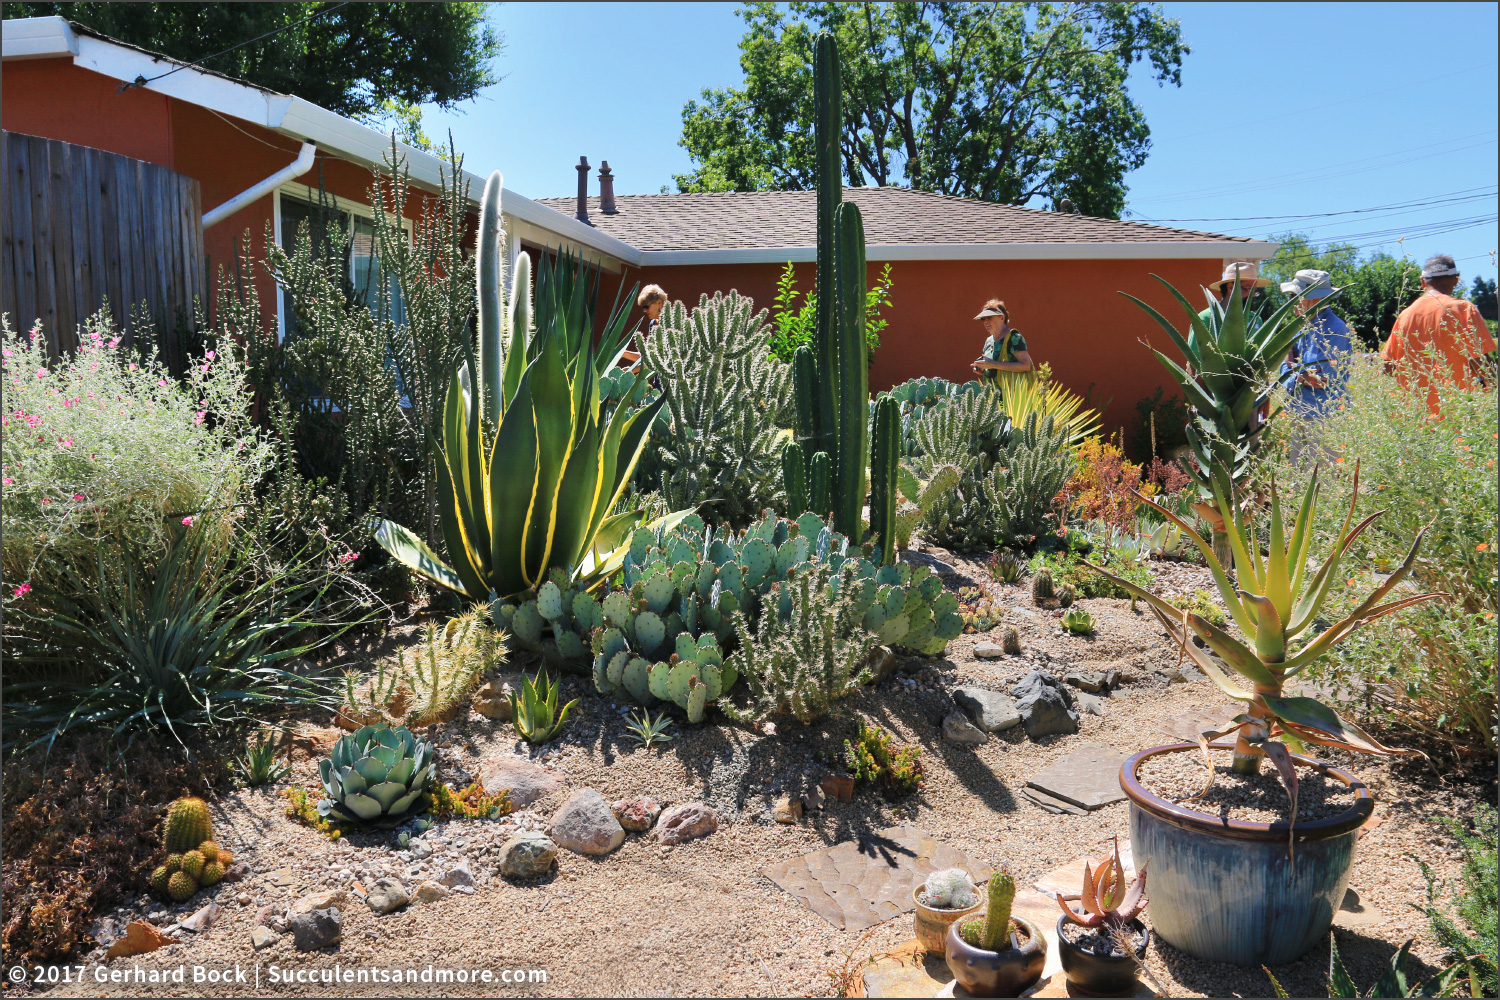 Agaves And Aloes Are A Common Sight In Dry Gardens In Northern California,  As Are Golden Barrel Cactus, But The More Lethal Members Of The Cactus ...